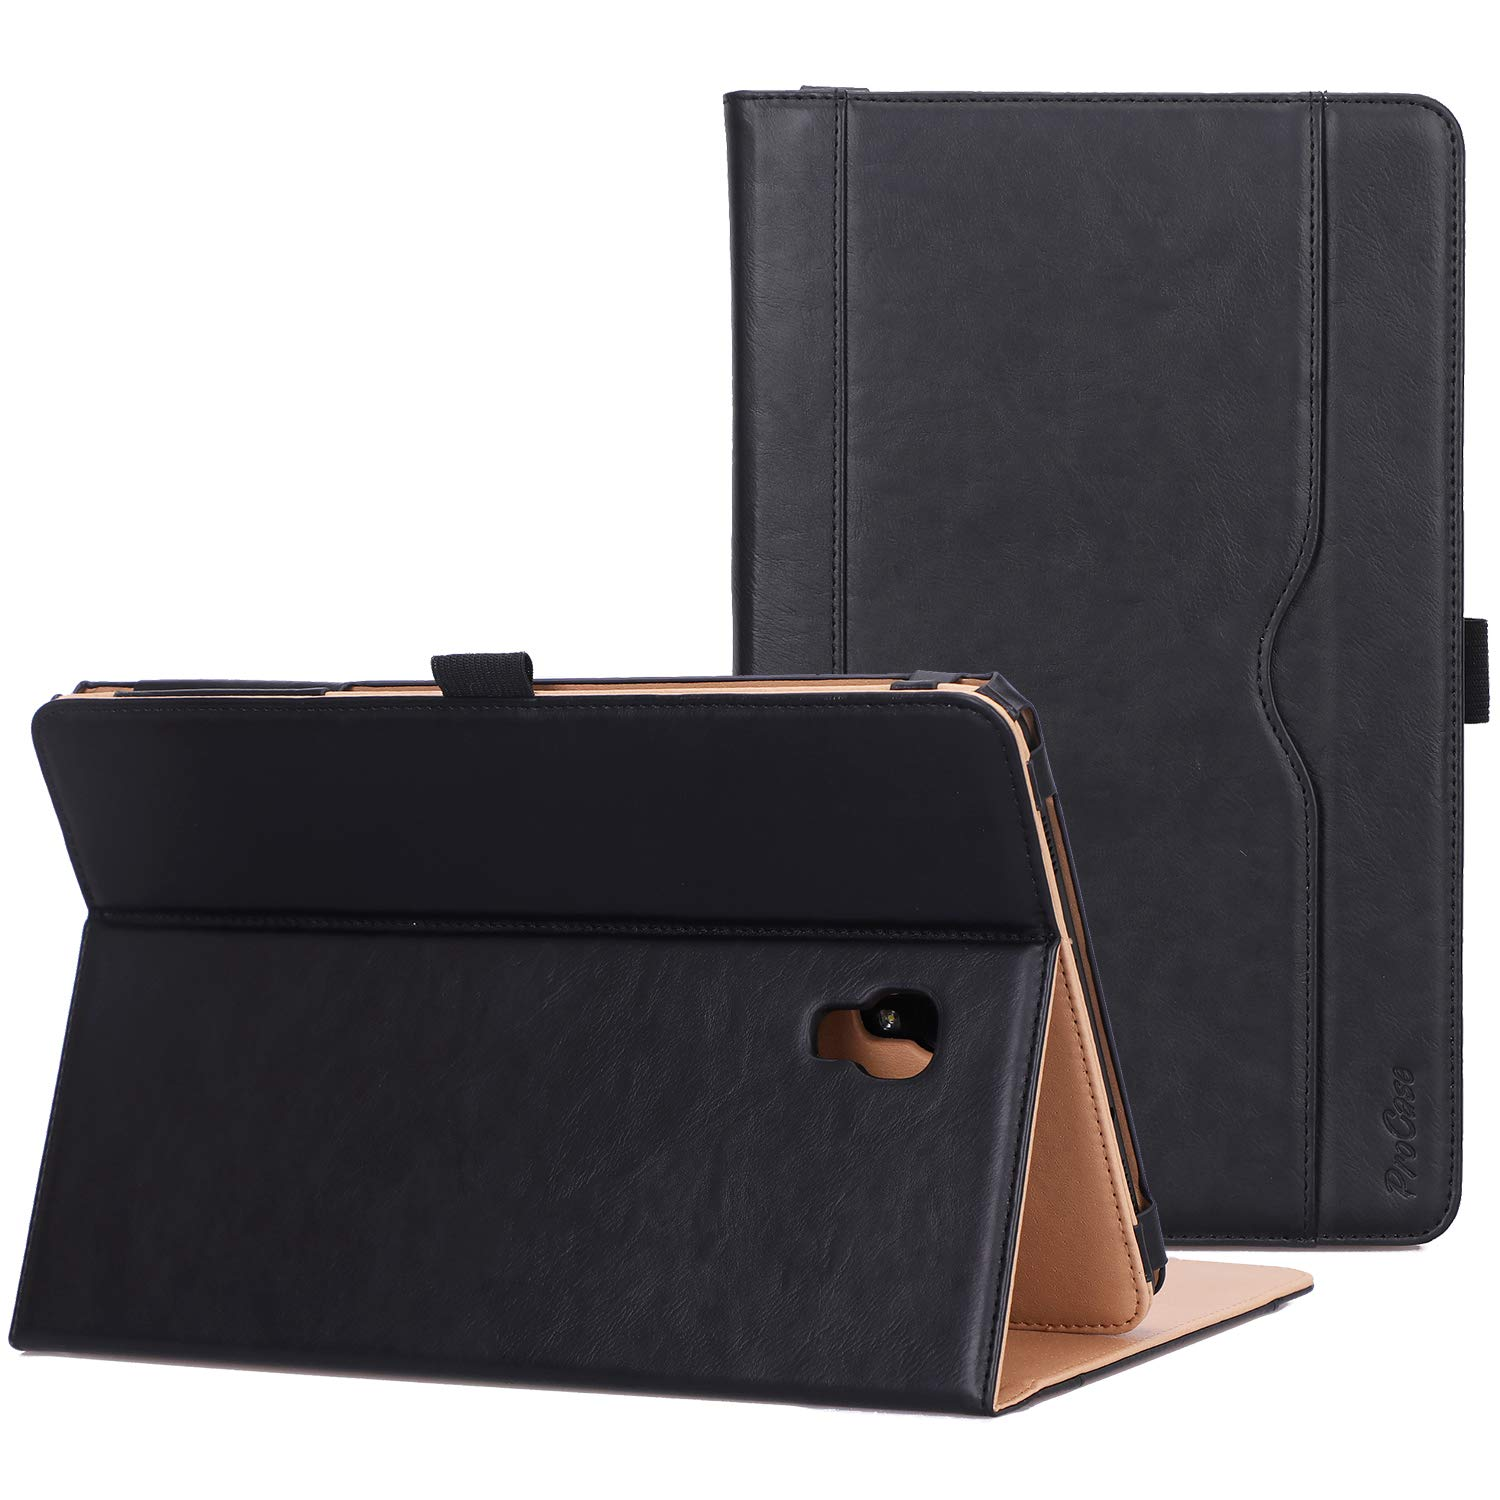 Procase Galaxy Tab A 10.5 Case T590 T595 T597 2018 Release, Premium PU Leather Stand Cover Protective Folio Case for Galaxy Tab A 10.5 Inch Tablet with Multiple Viewing Angles Auto Sleep Wake -Black